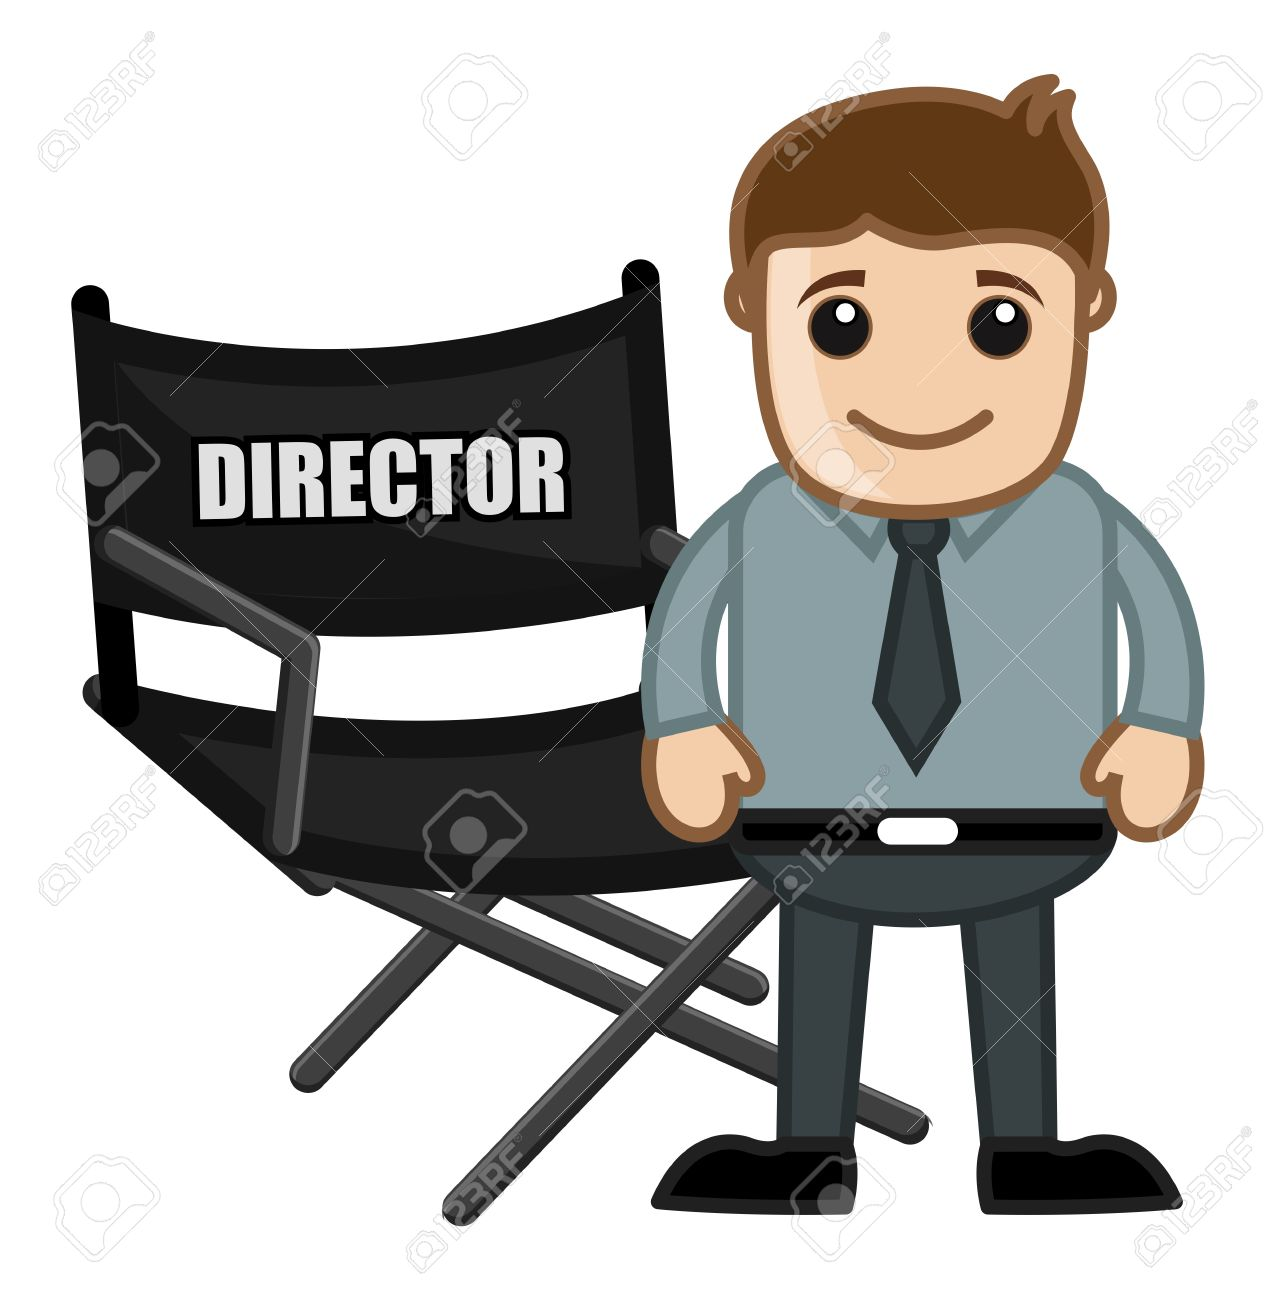 director chair business cartoons vectors royalty free cliparts